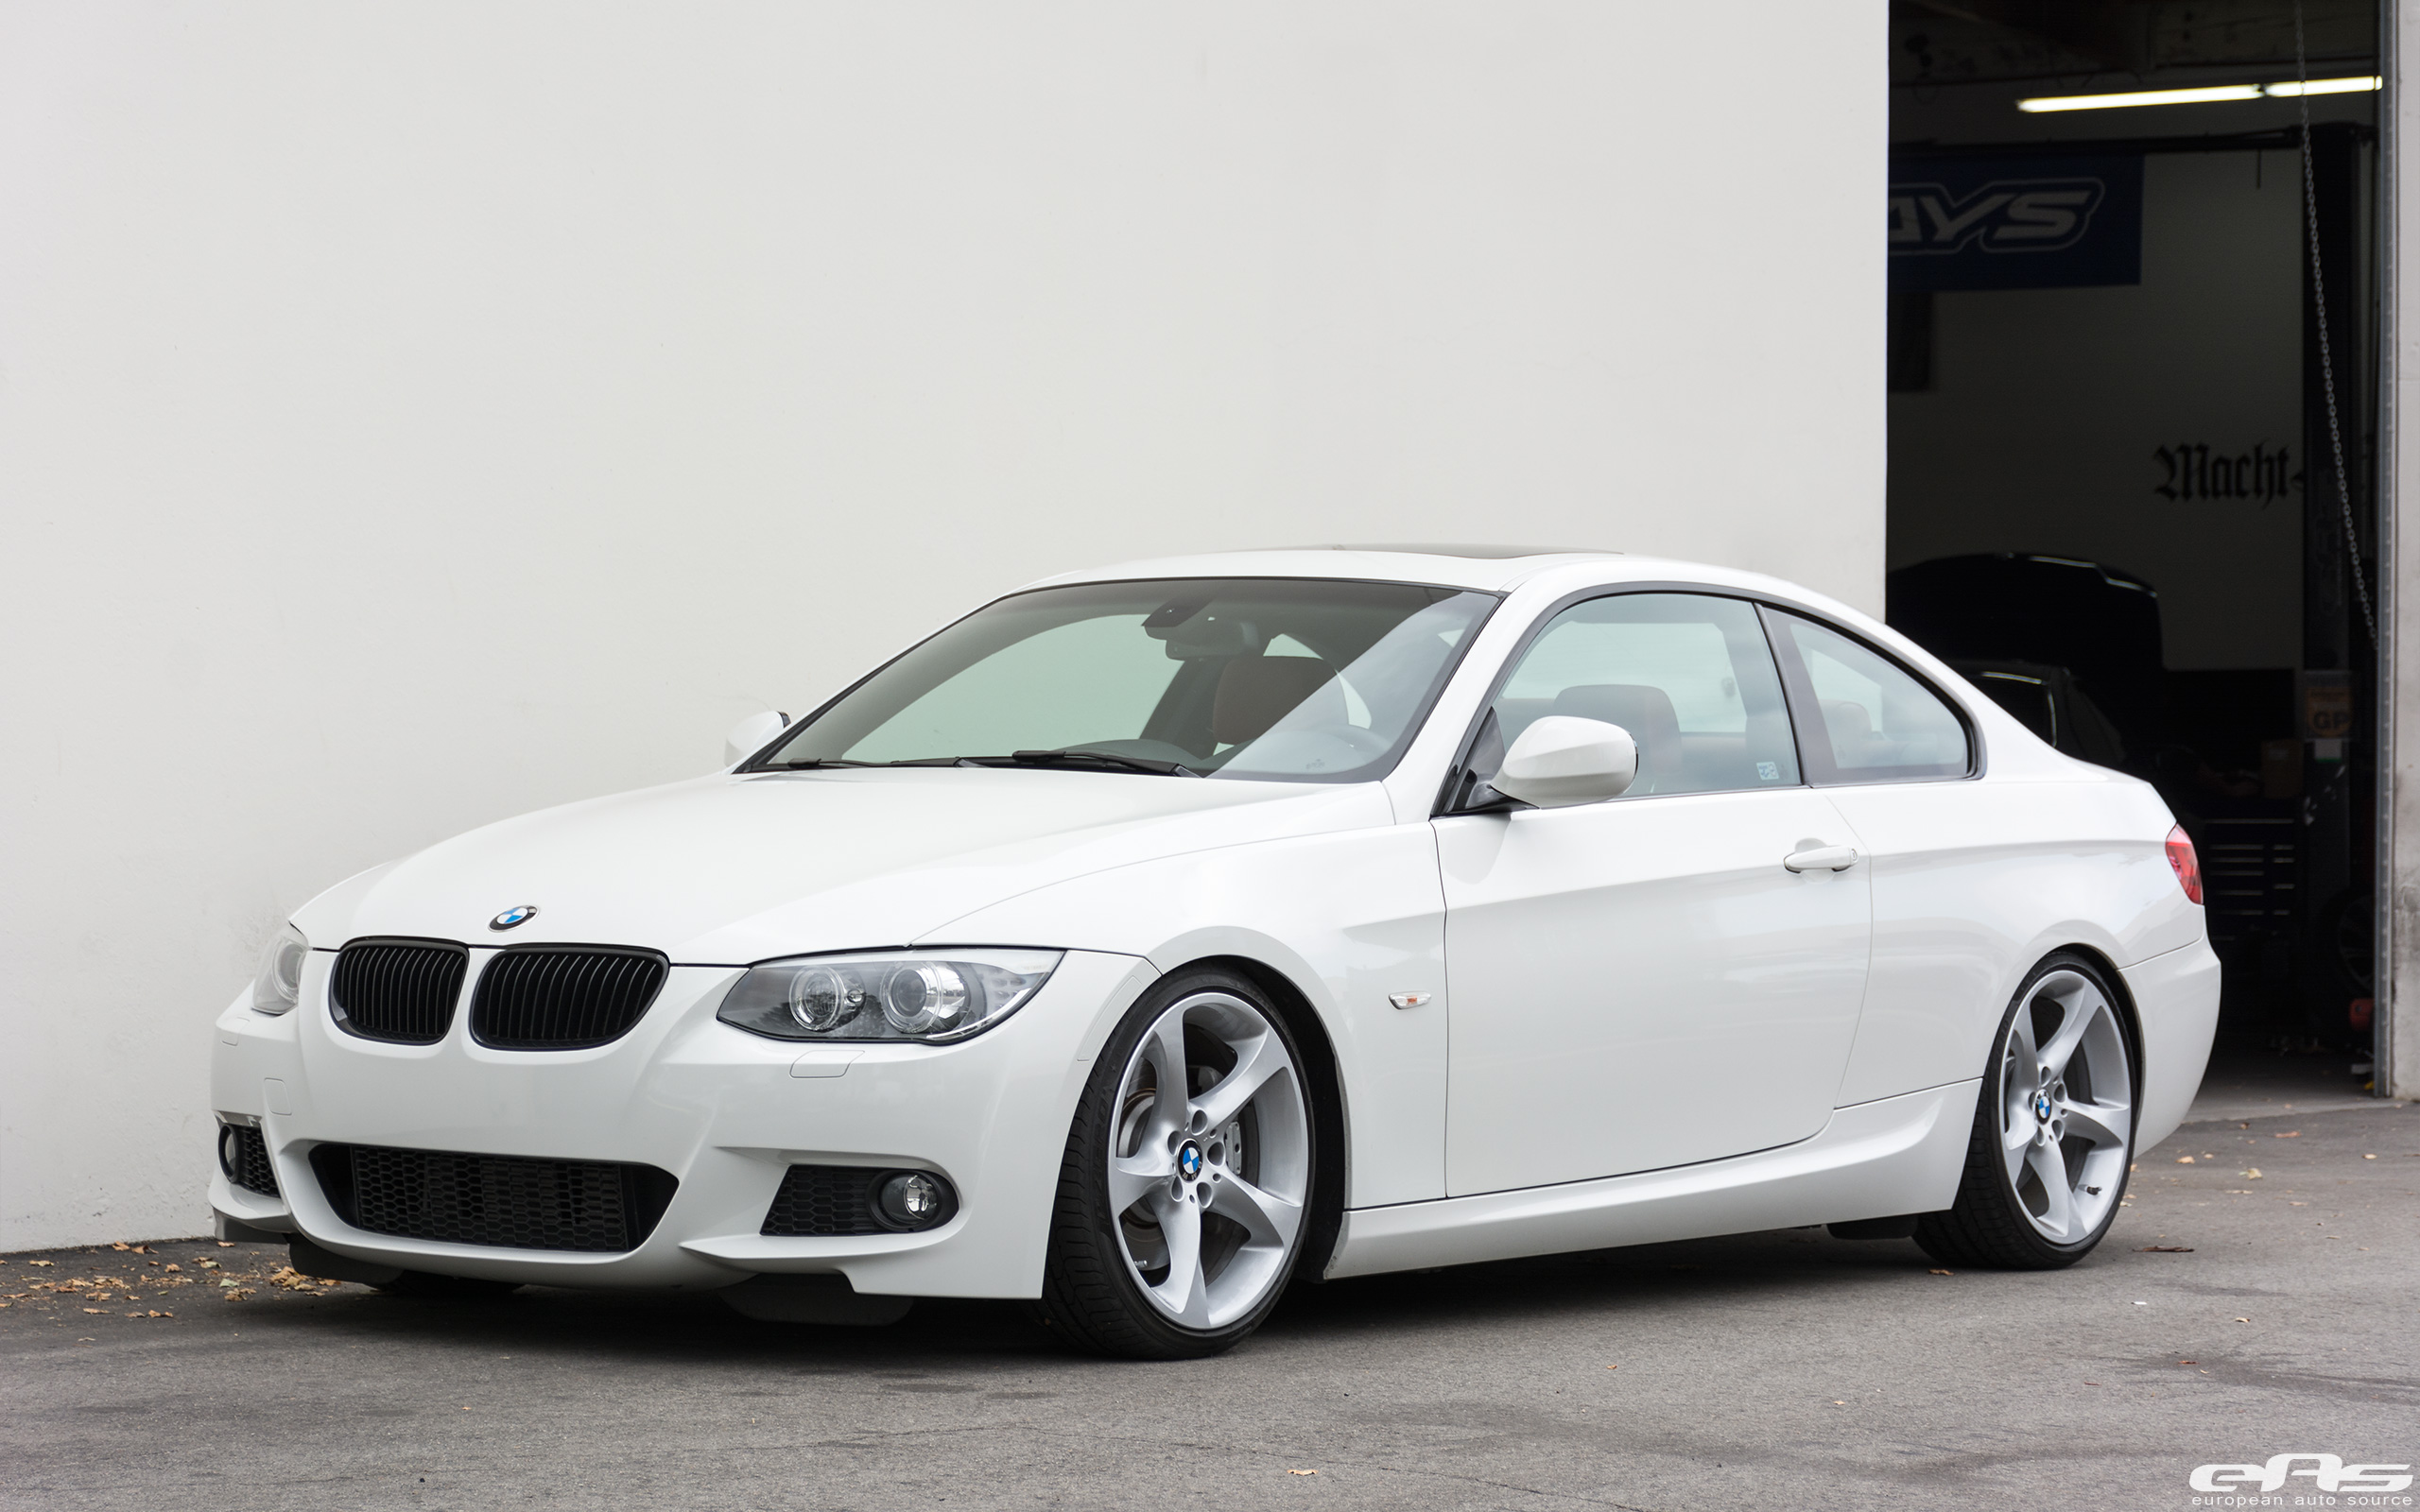 Alpine White Bmw E92 335i Gets A Suspension Update